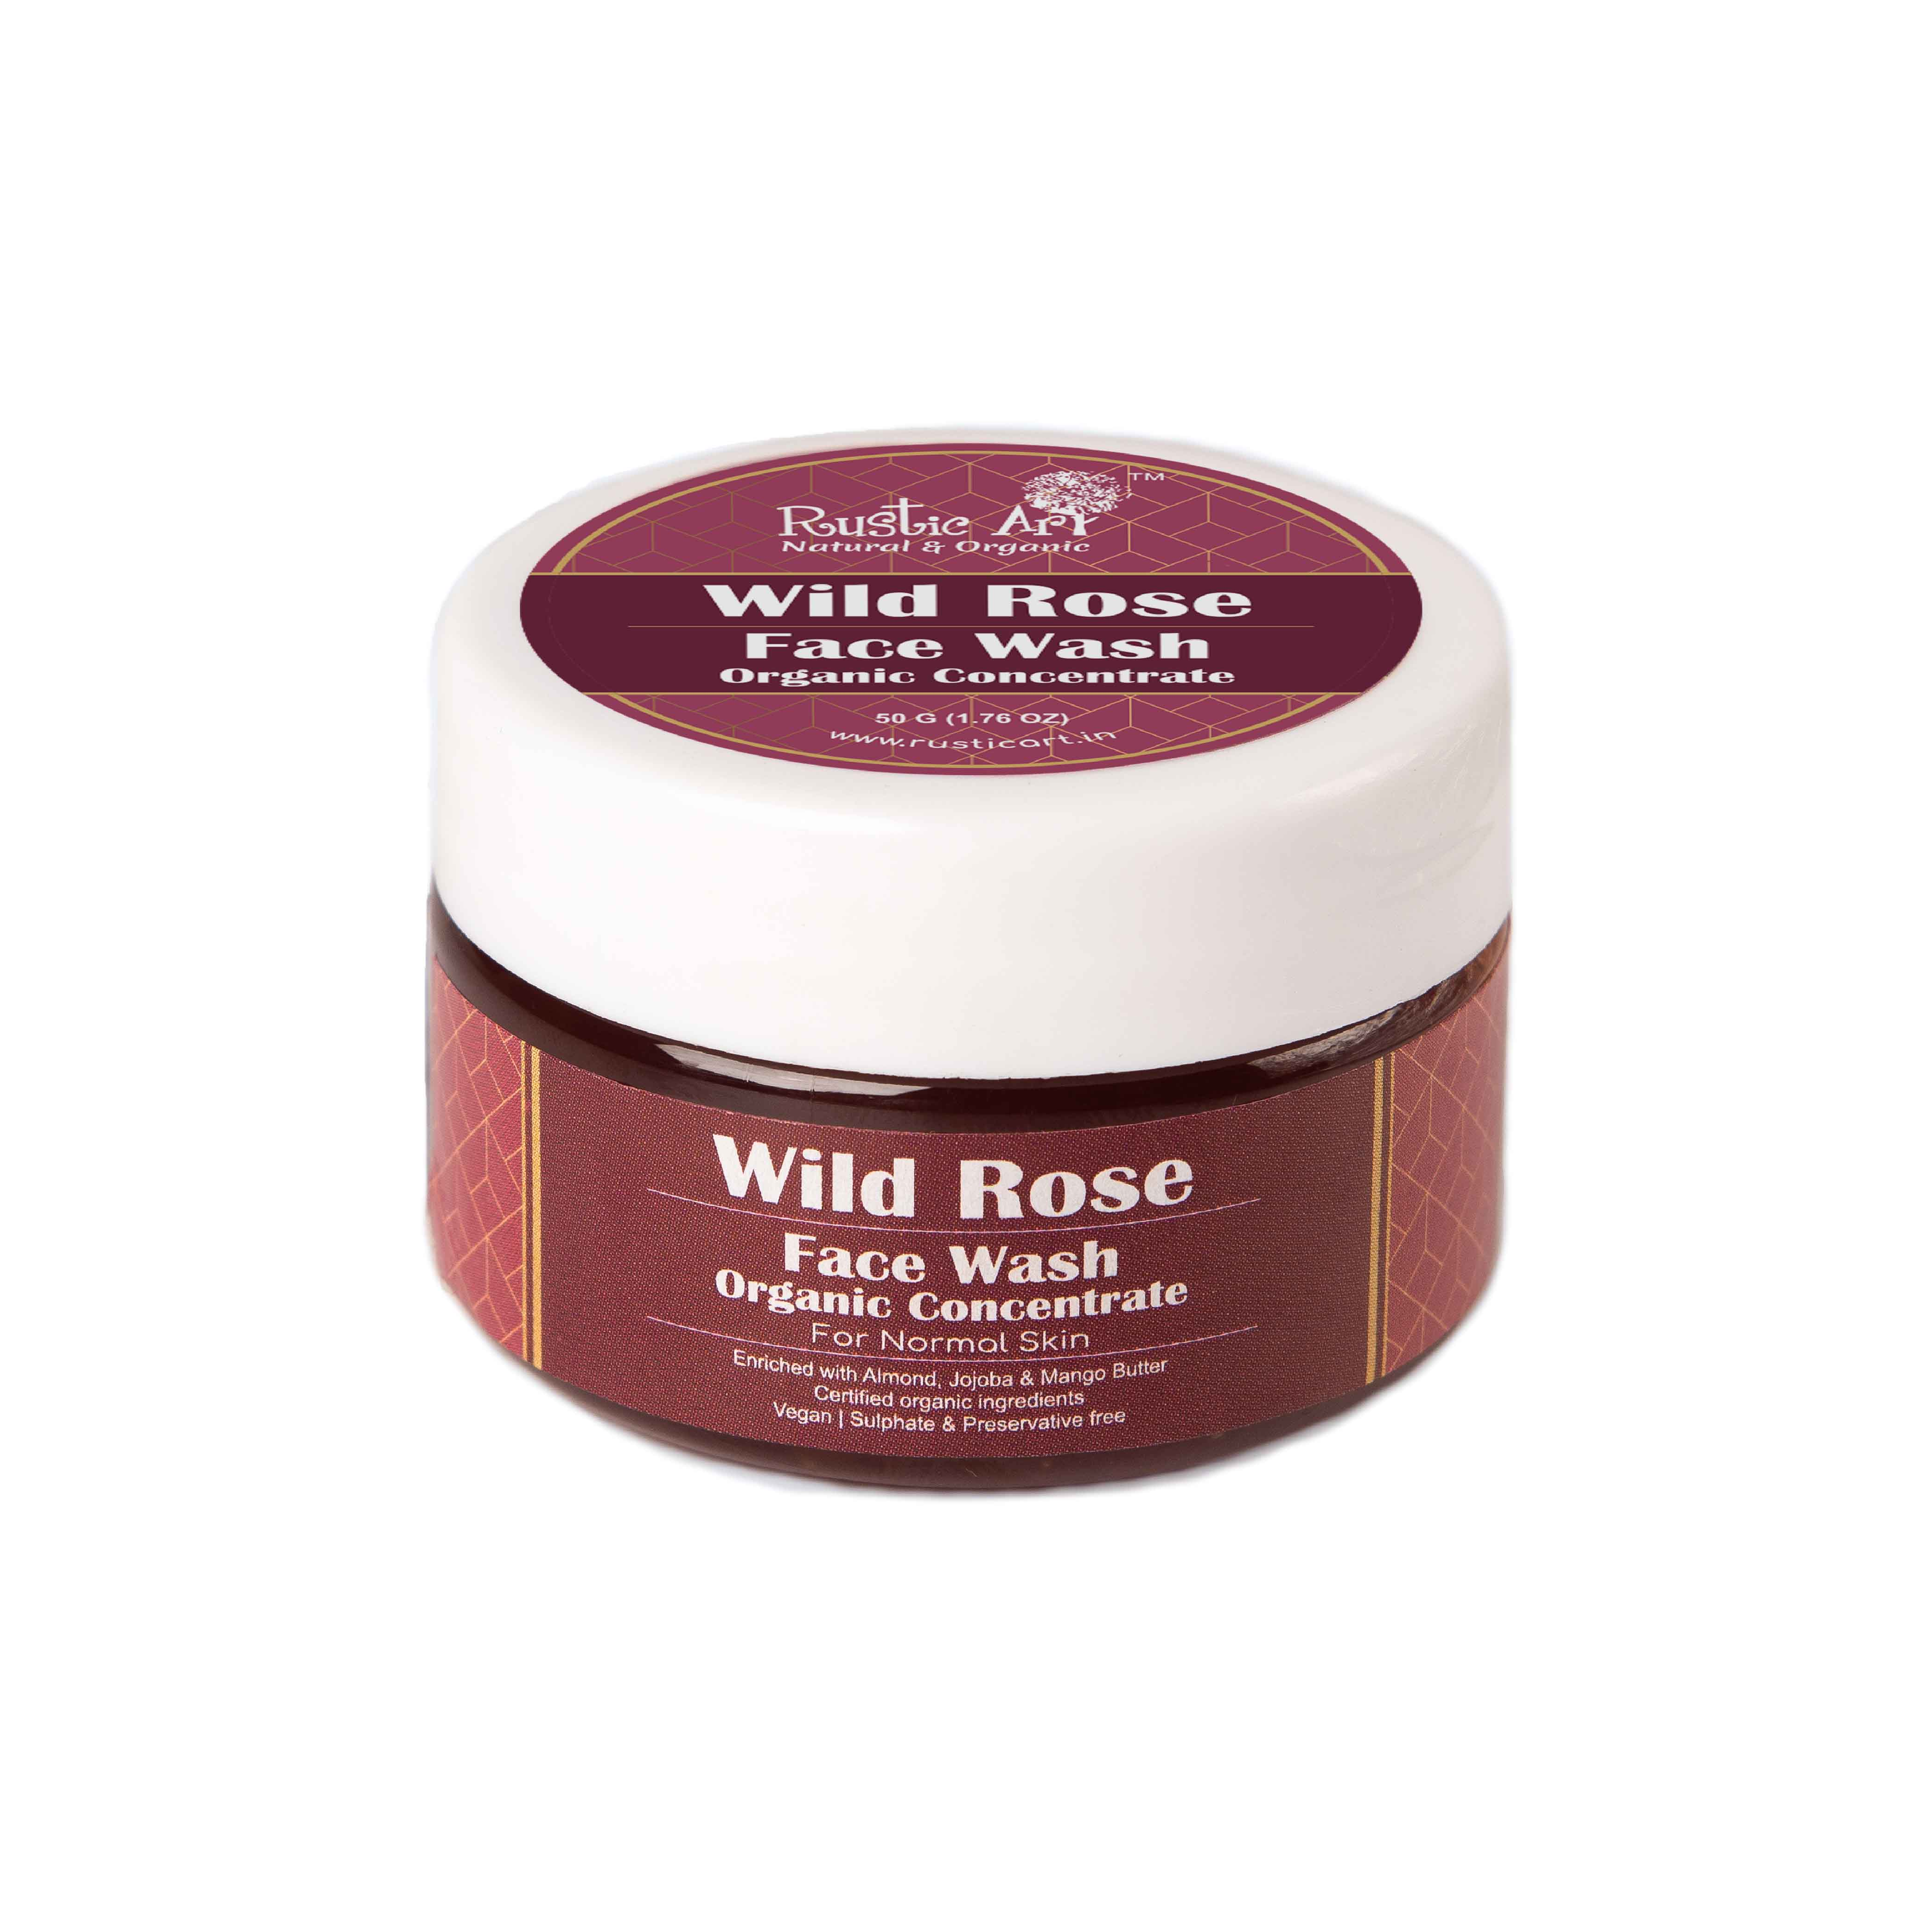 Rustic Art Organic Wild Rose Face Wash Concentrate - 50g